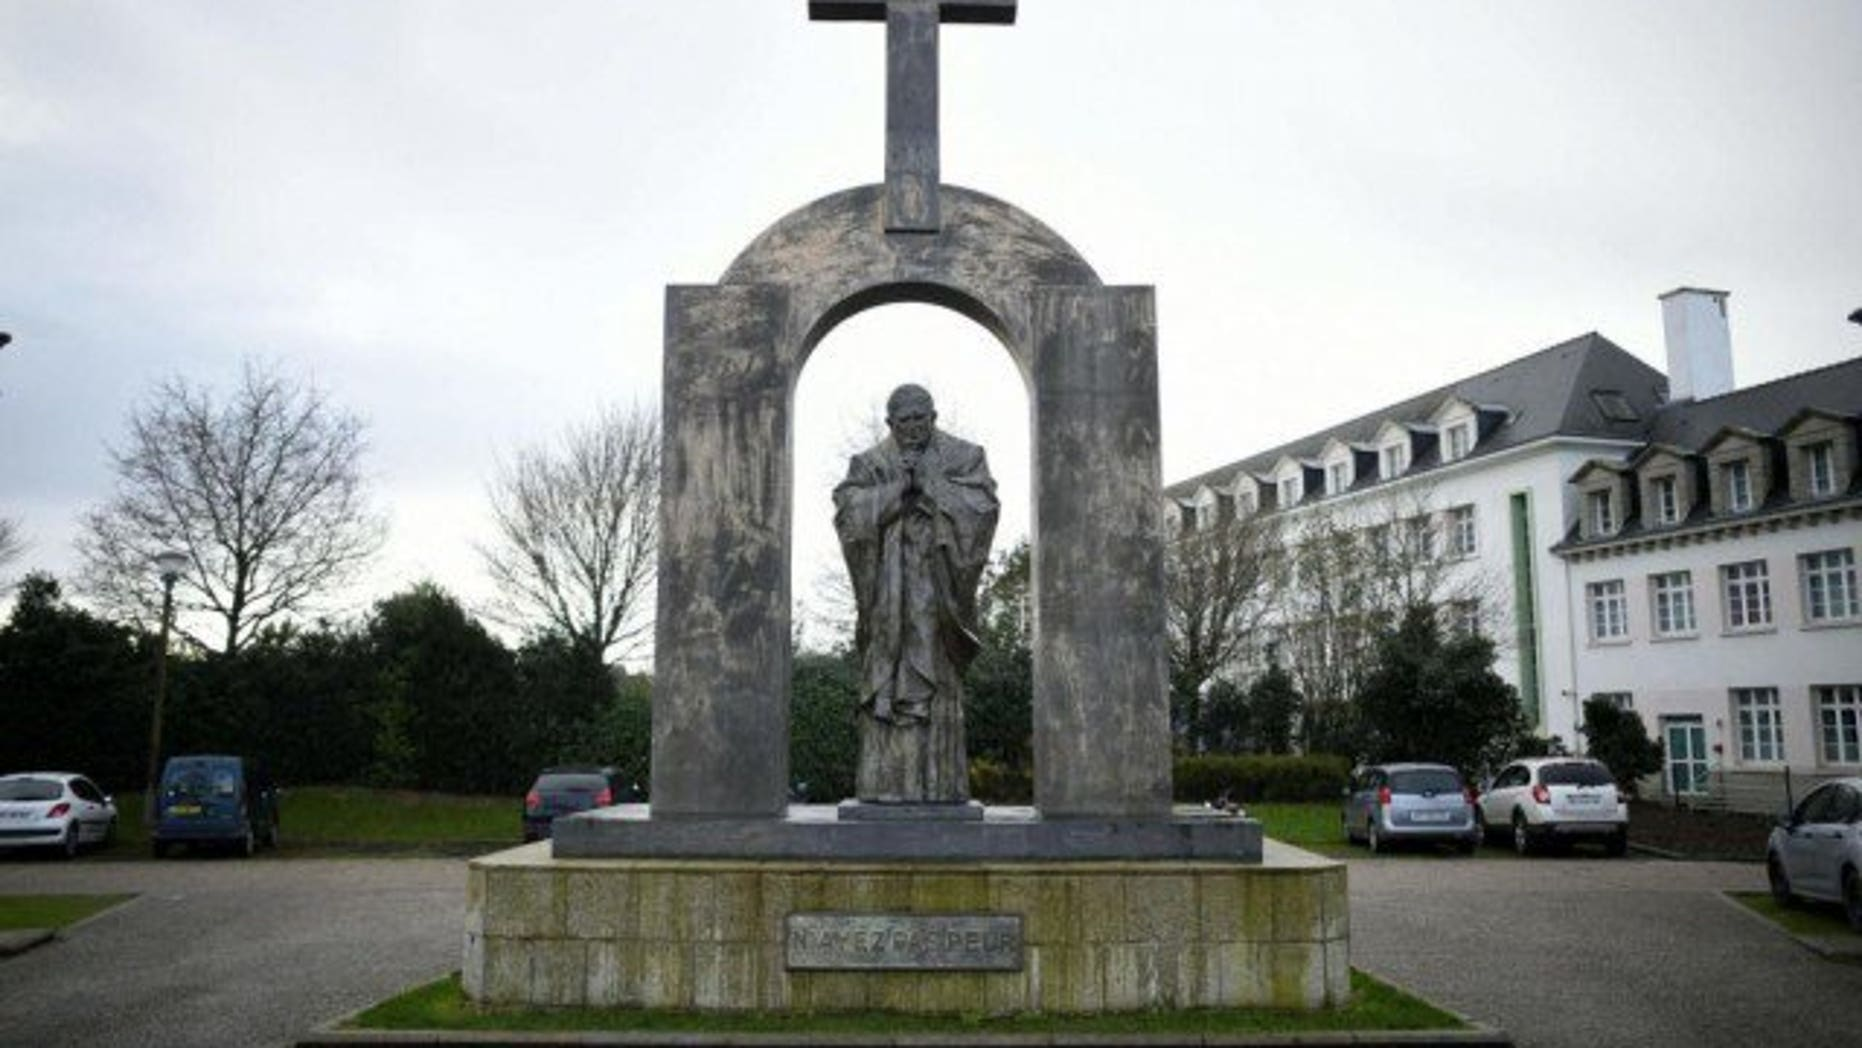 A statue of the late Pope John Paul II in Ploërmel, France.